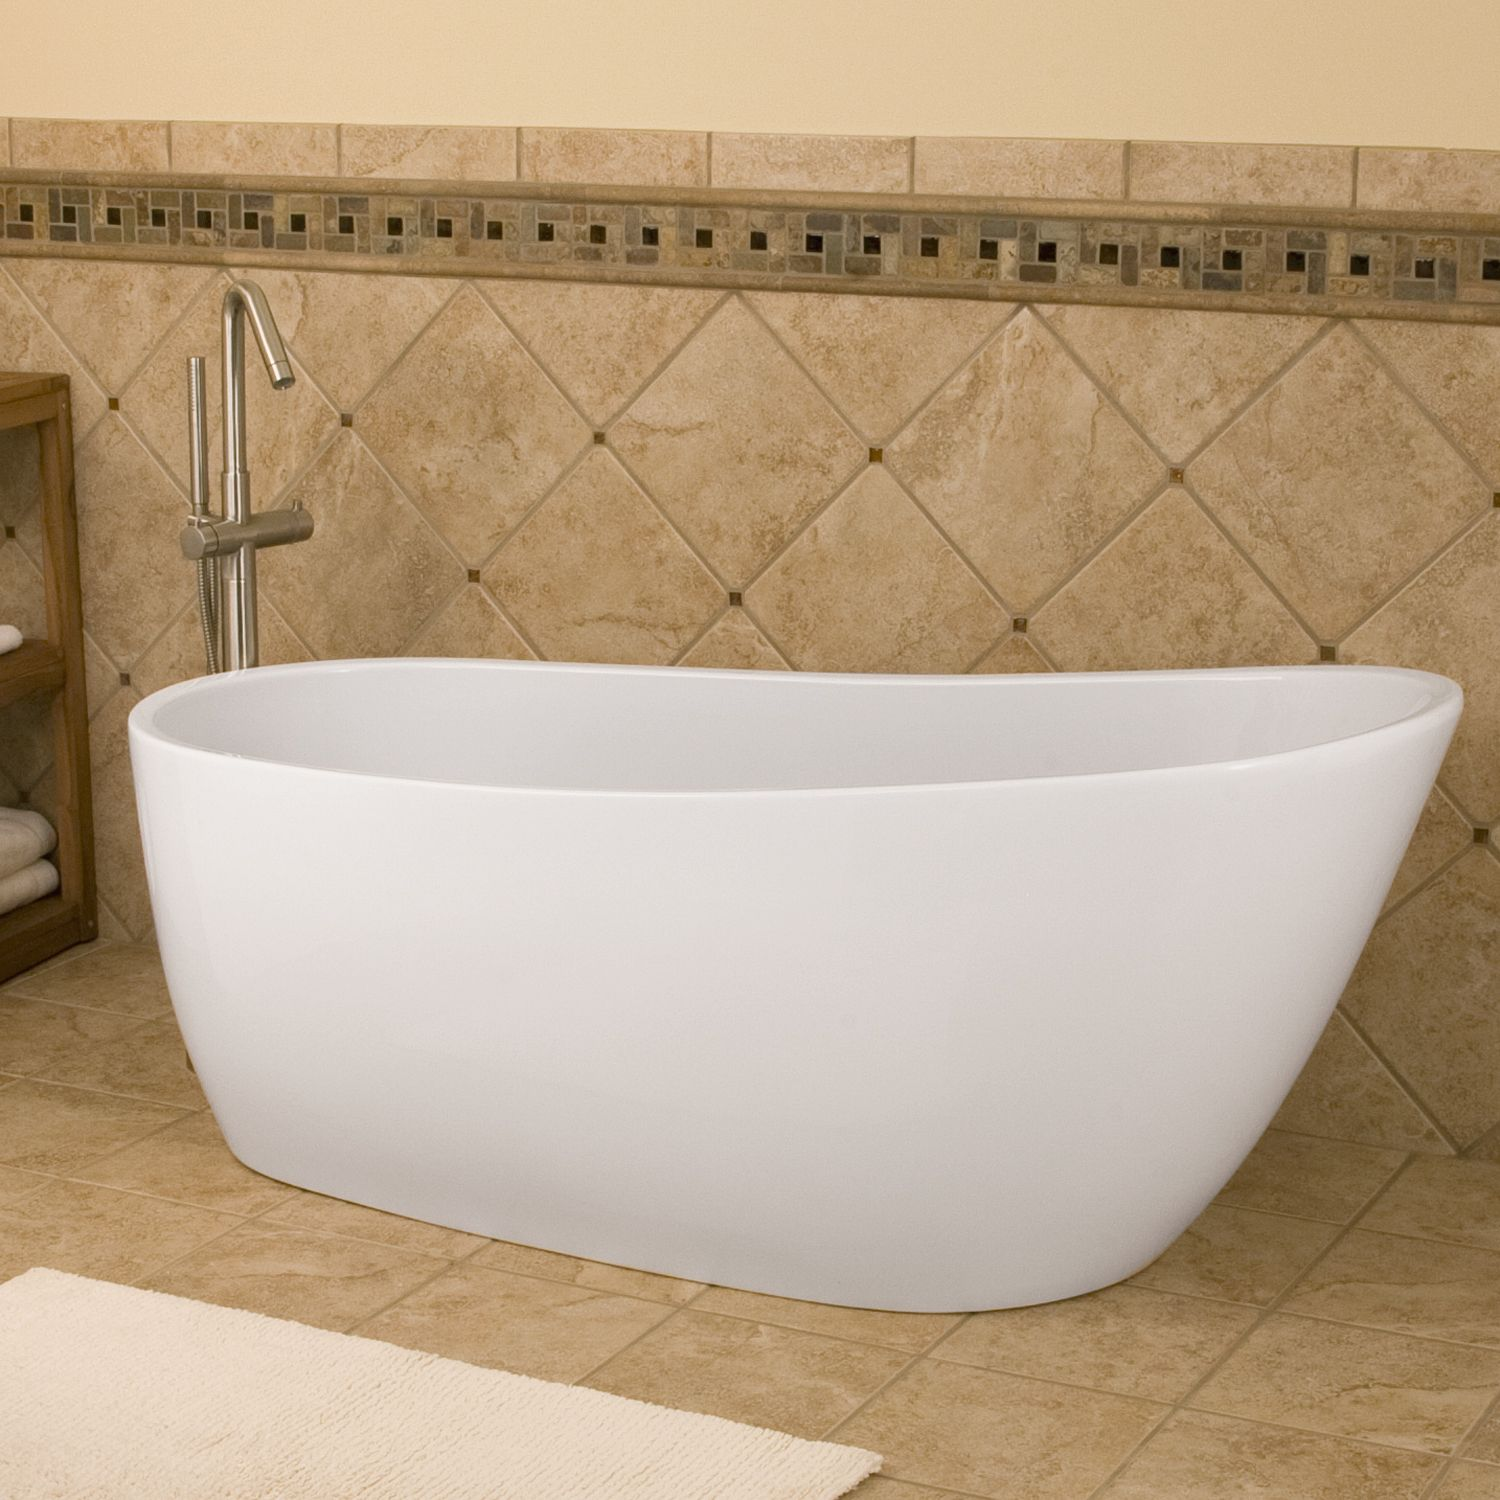 60 free standing tub. 60 Inches  Gena Freestanding Acrylic Tub Slipper Tub Tubs And Bathtubs